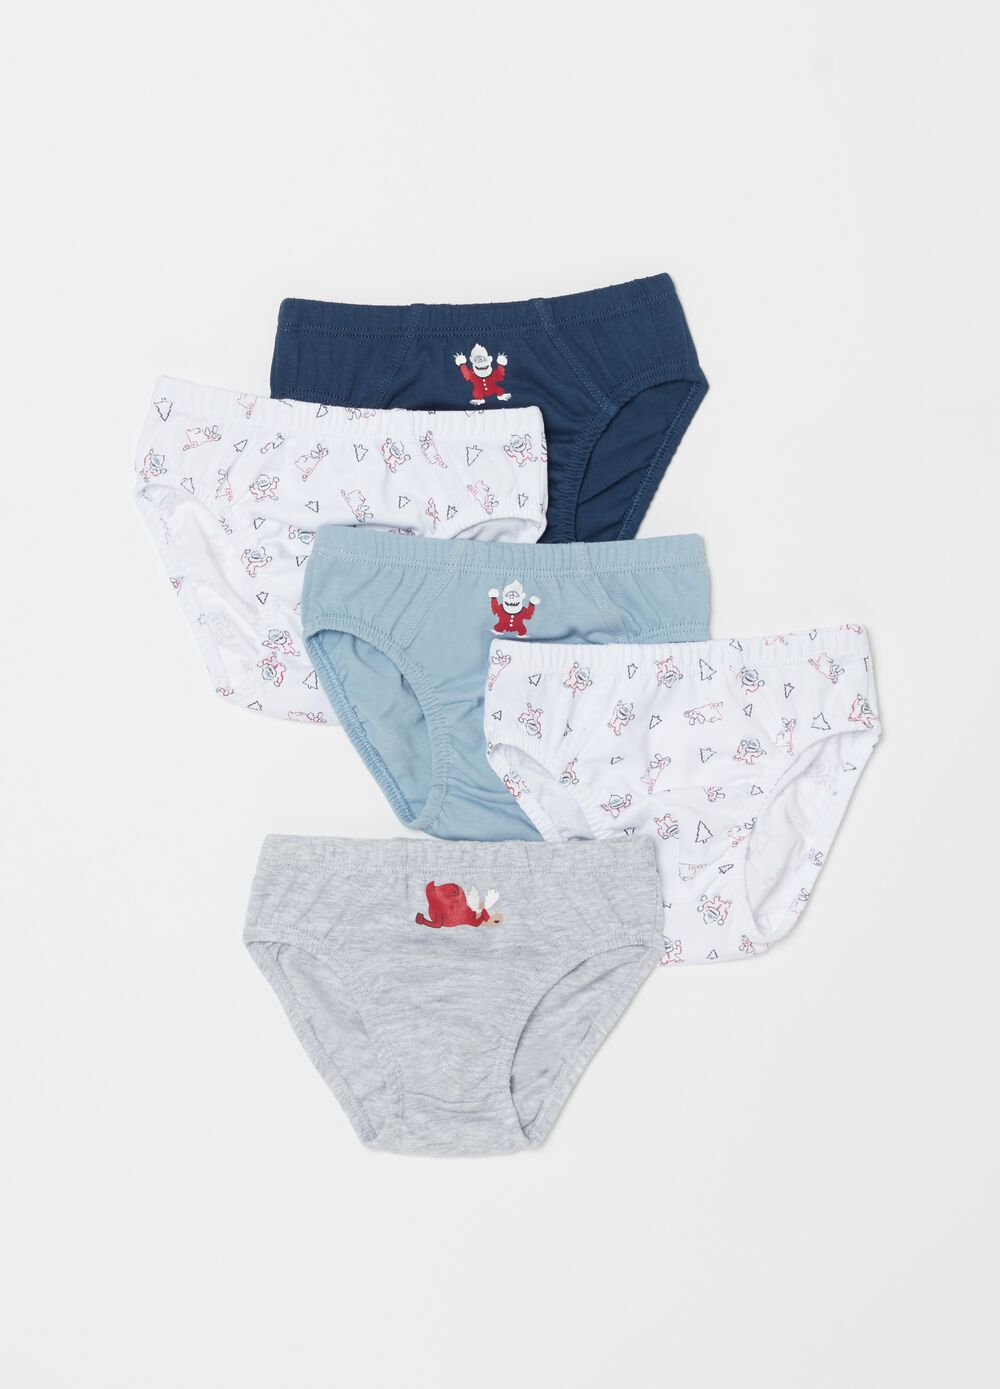 Five-pack Christmas briefs in 100% organic cotton